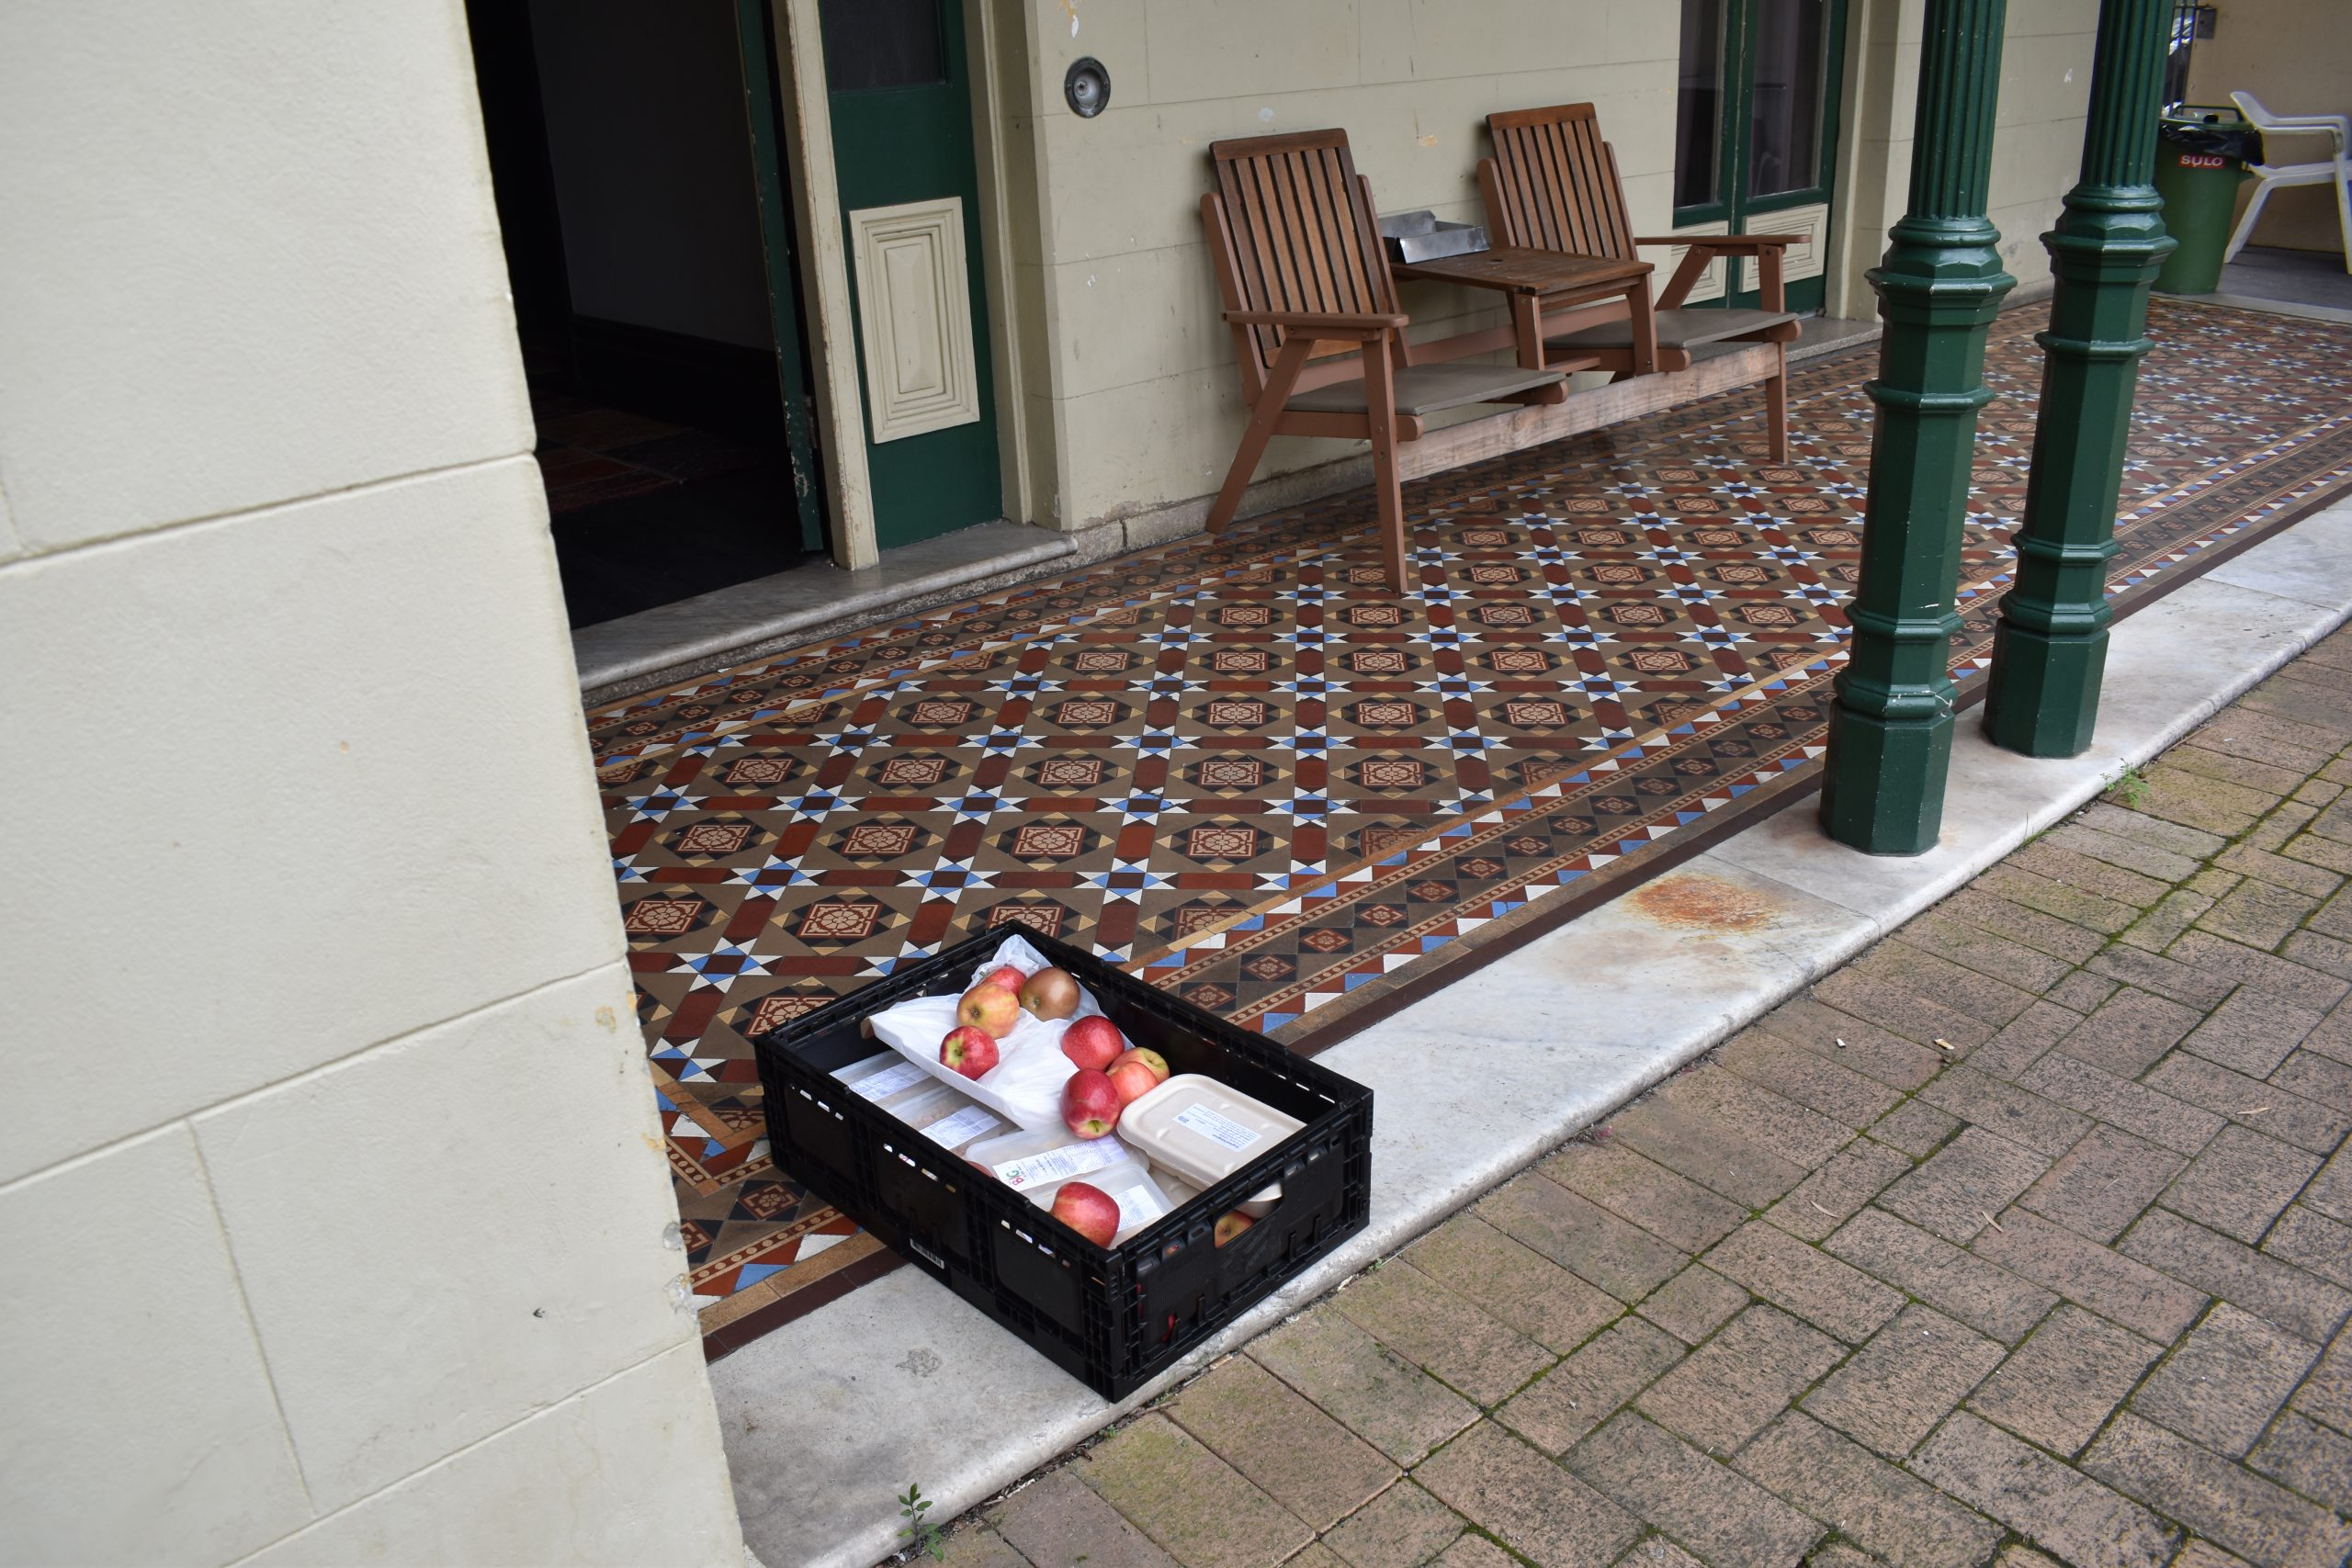 Crate full of food outside a building